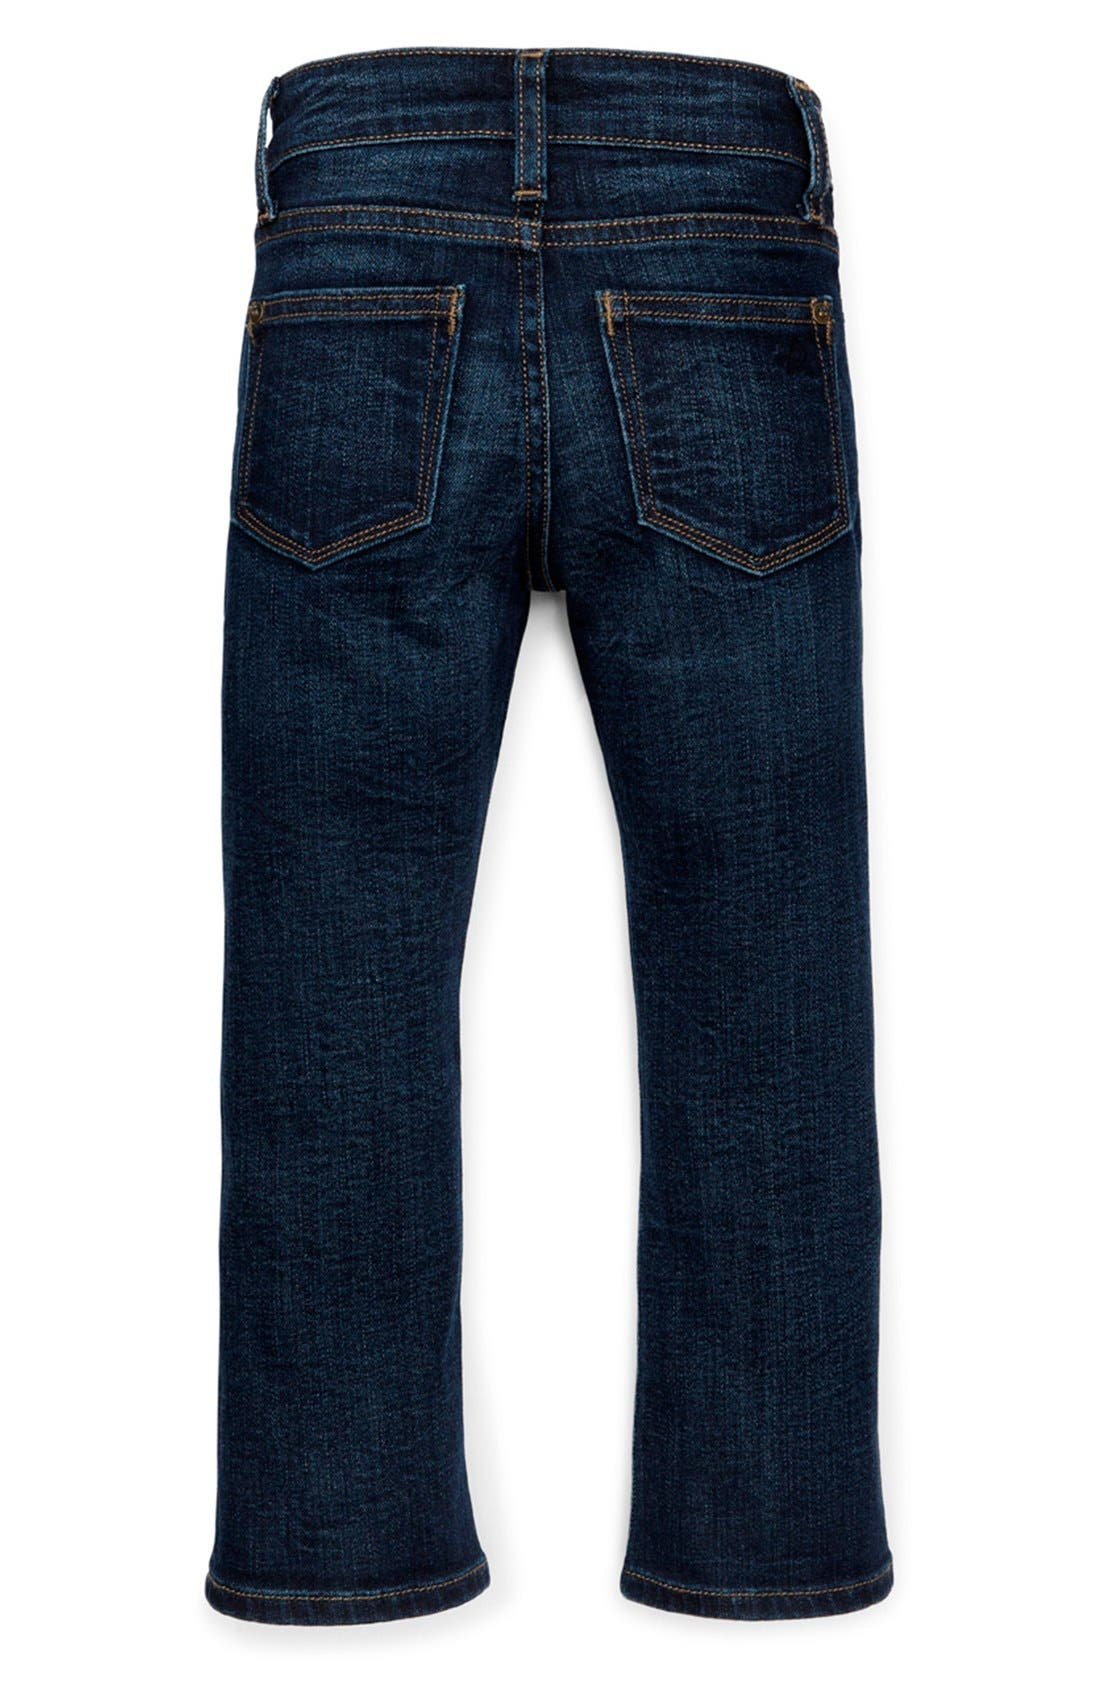 'Brady' Slim Fit Jeans,                             Alternate thumbnail 2, color,                             Ferret